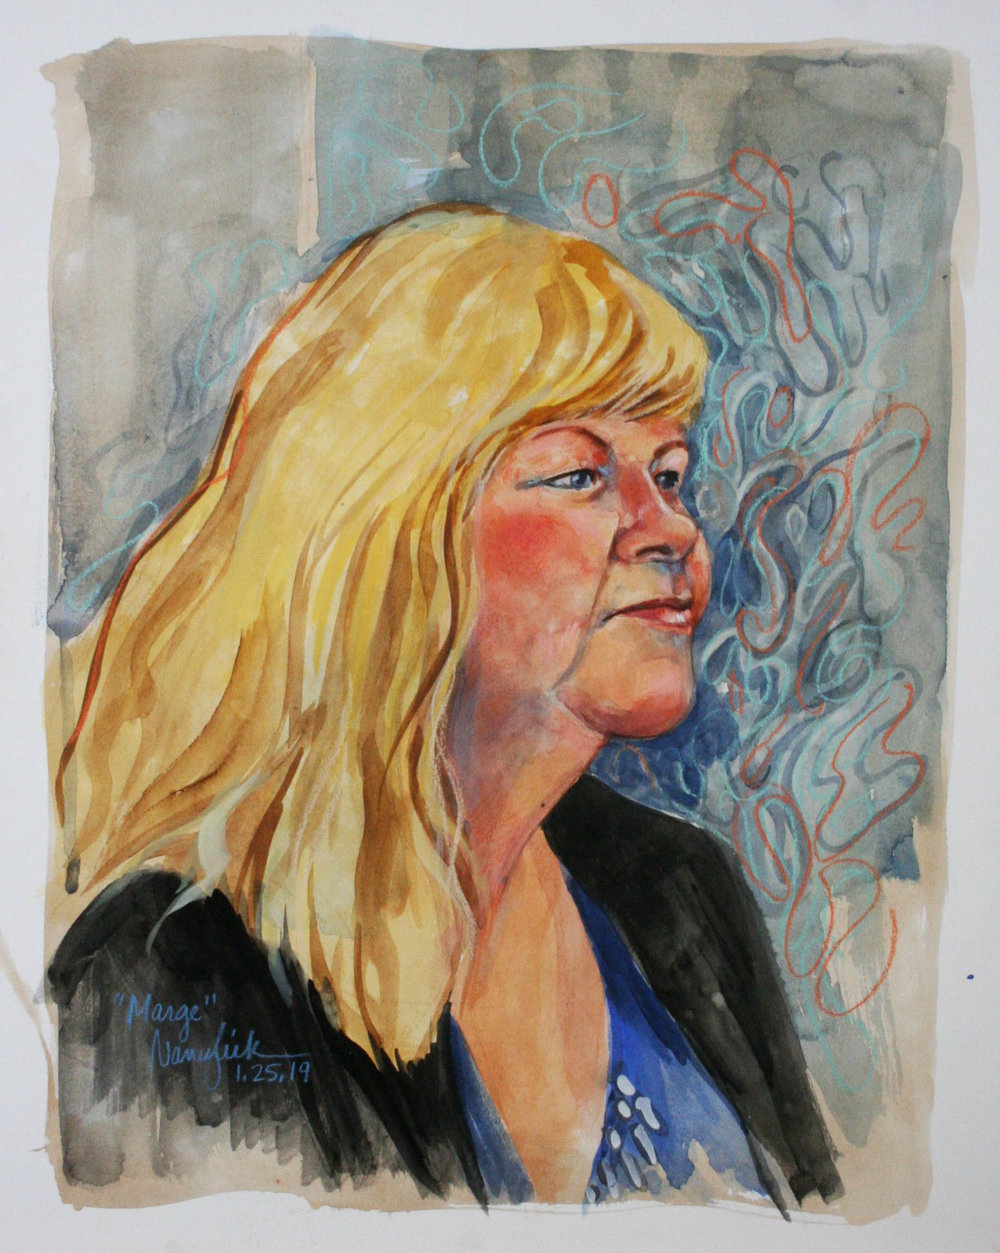 Nancy Lick did this mixed media drawing.